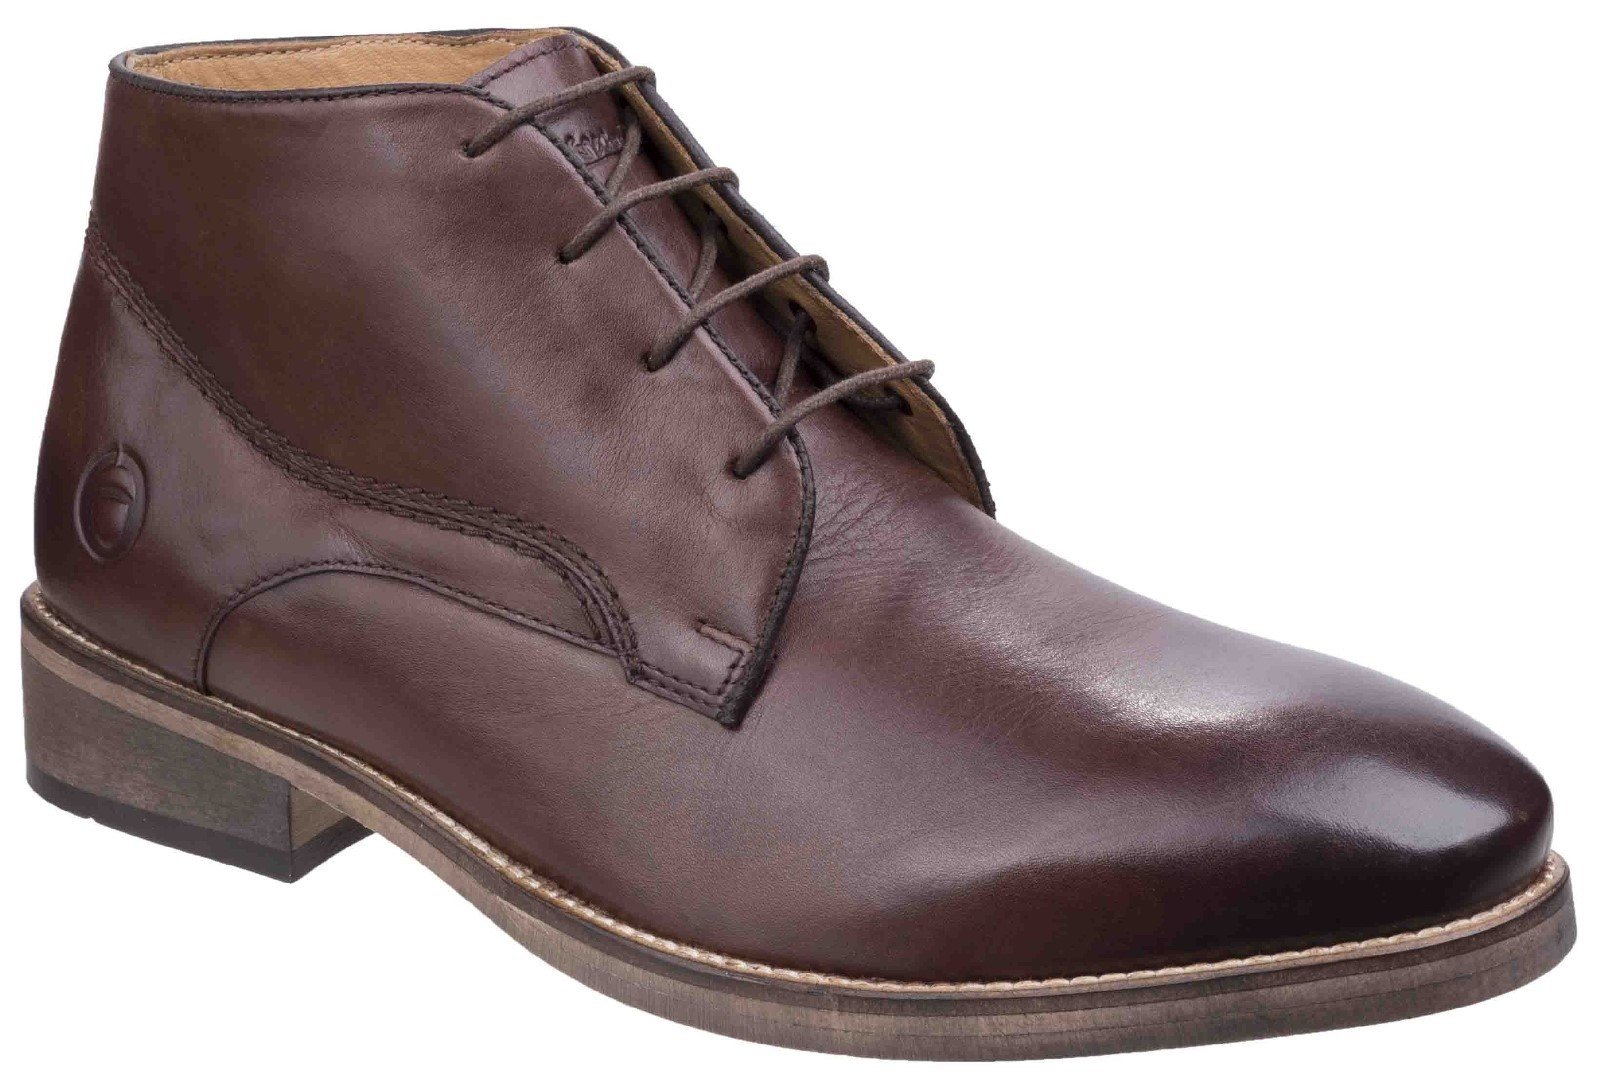 Cotswold Men's Maugesbury Ankle Boot Various Colours 26269 - Dark Brown 12